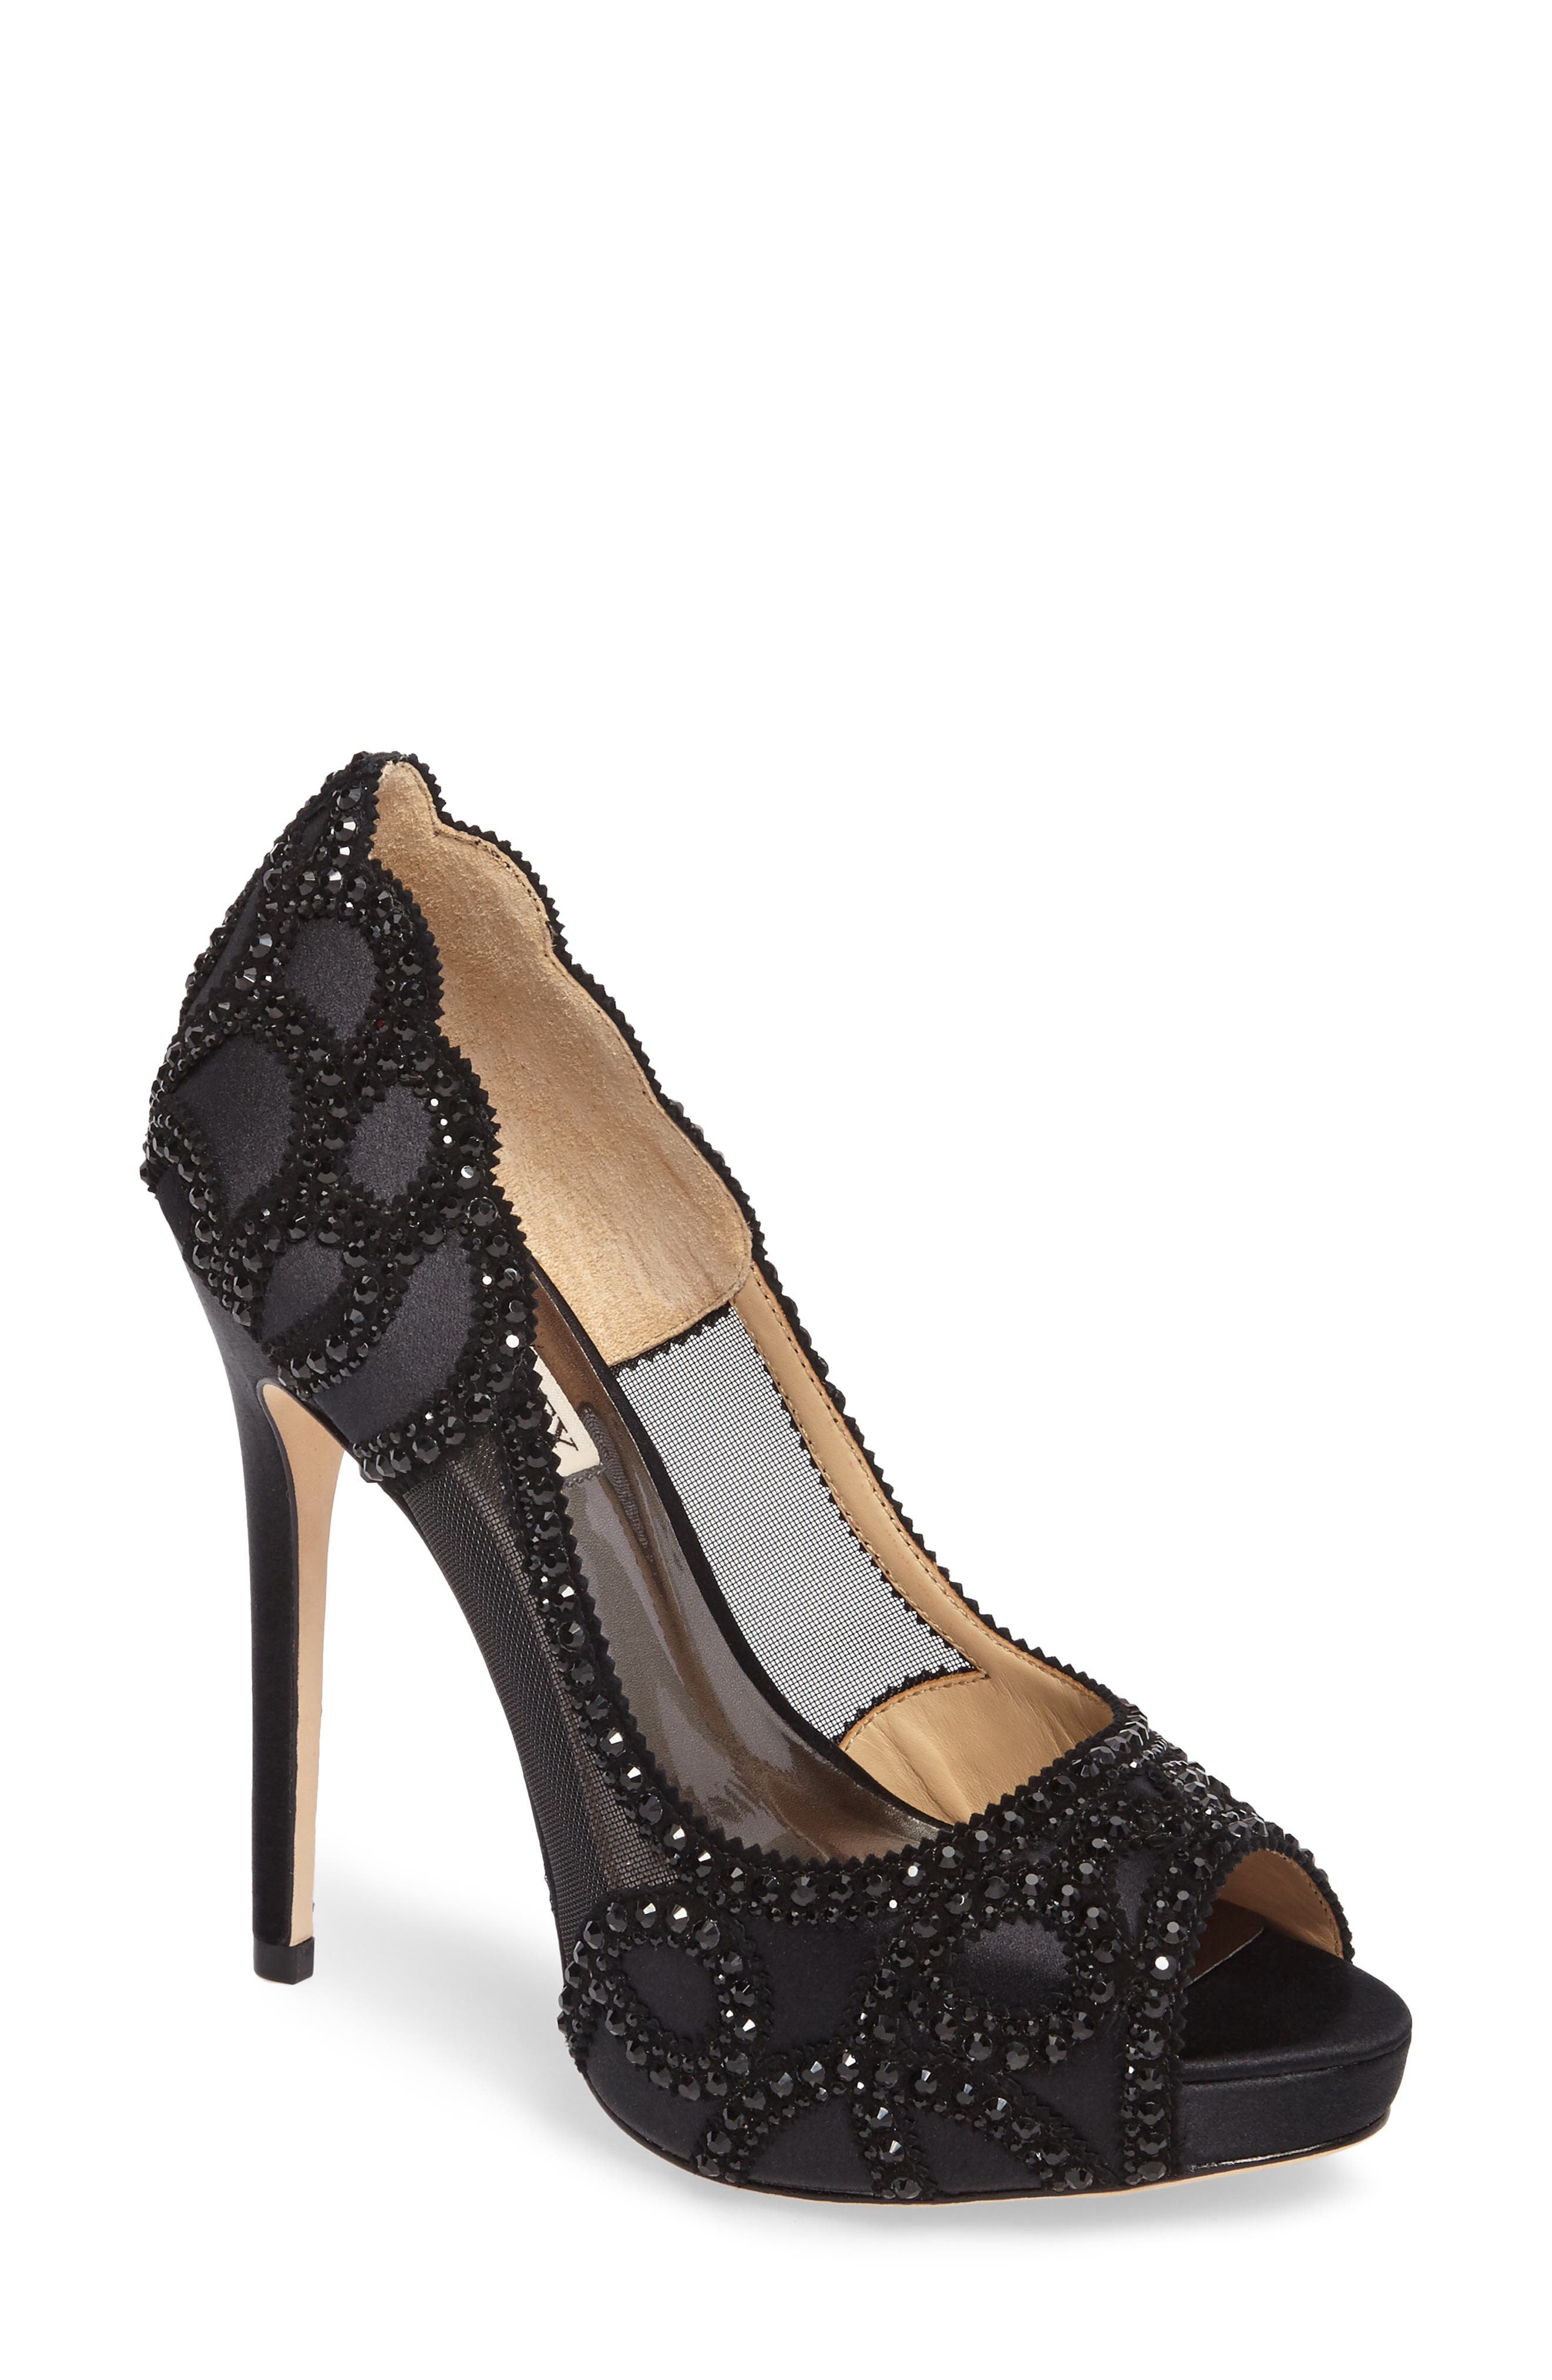 Witney Embellished Peep Toe Pump,                         Main,                         color, Black Satin